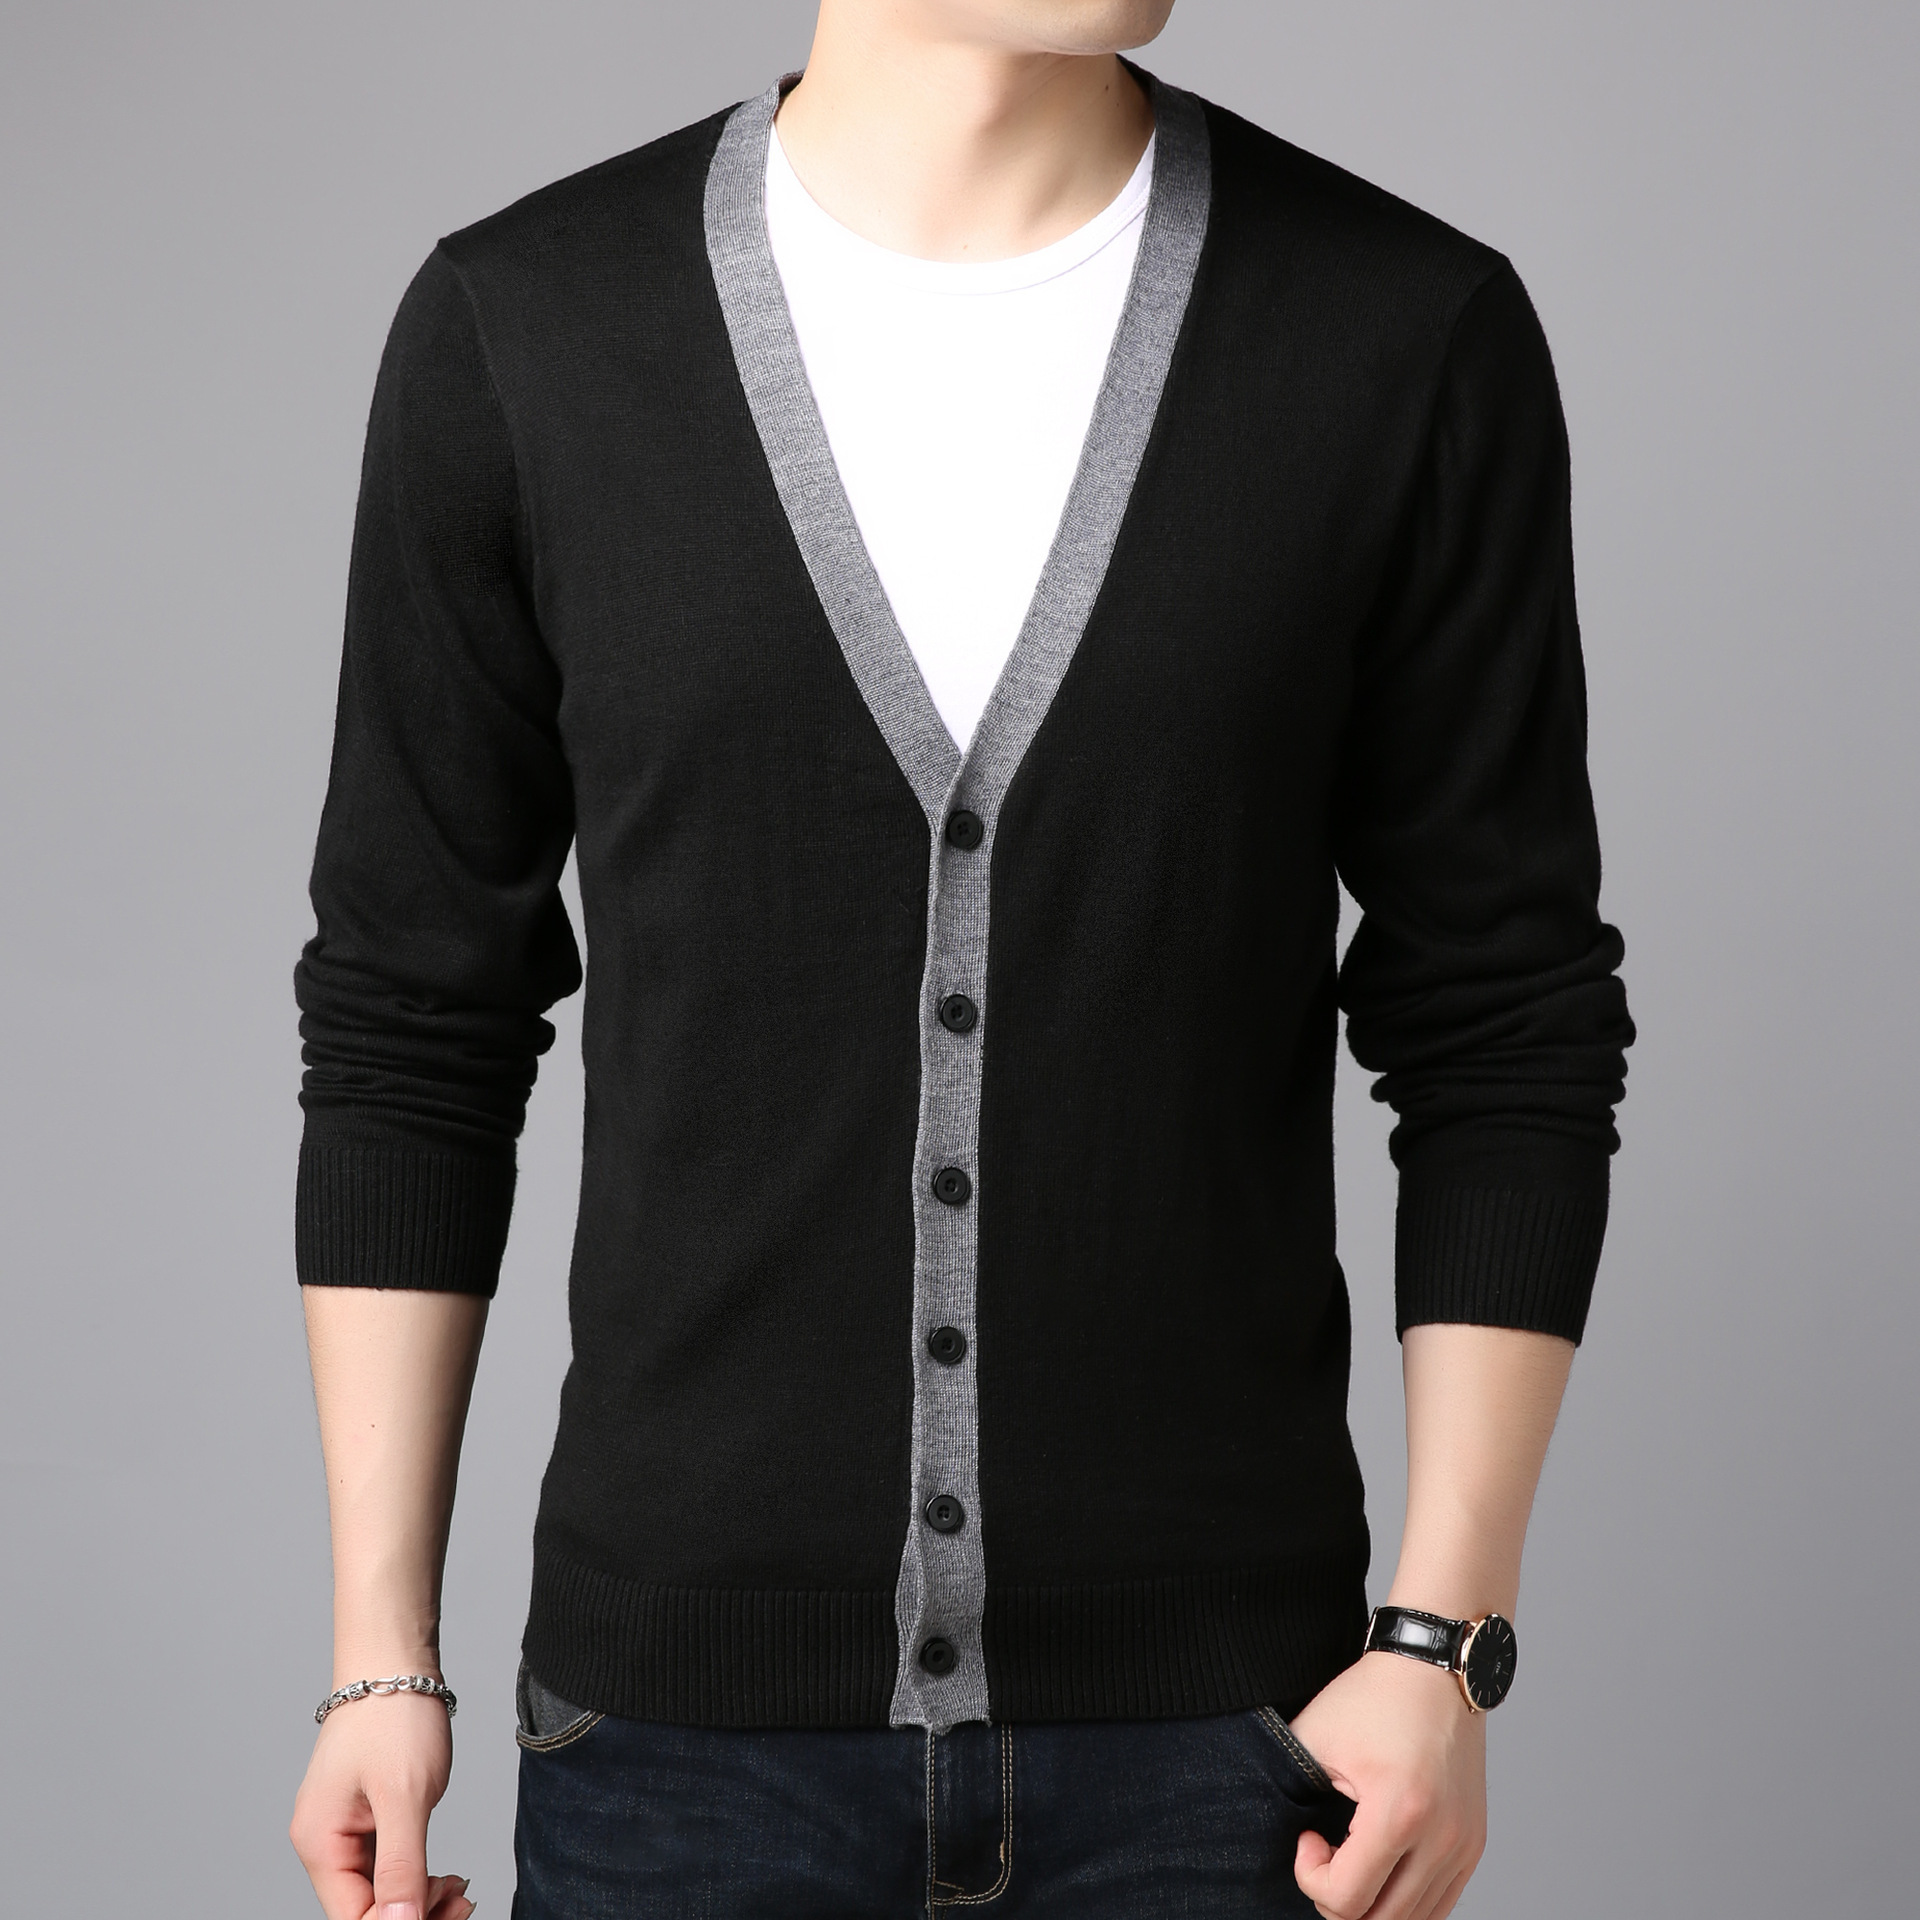 BO 2019 New Men Fall Thin Section Of Sweater Knitting Cardigan Leisure Long-sleeved Youth Cultivate One's Morality